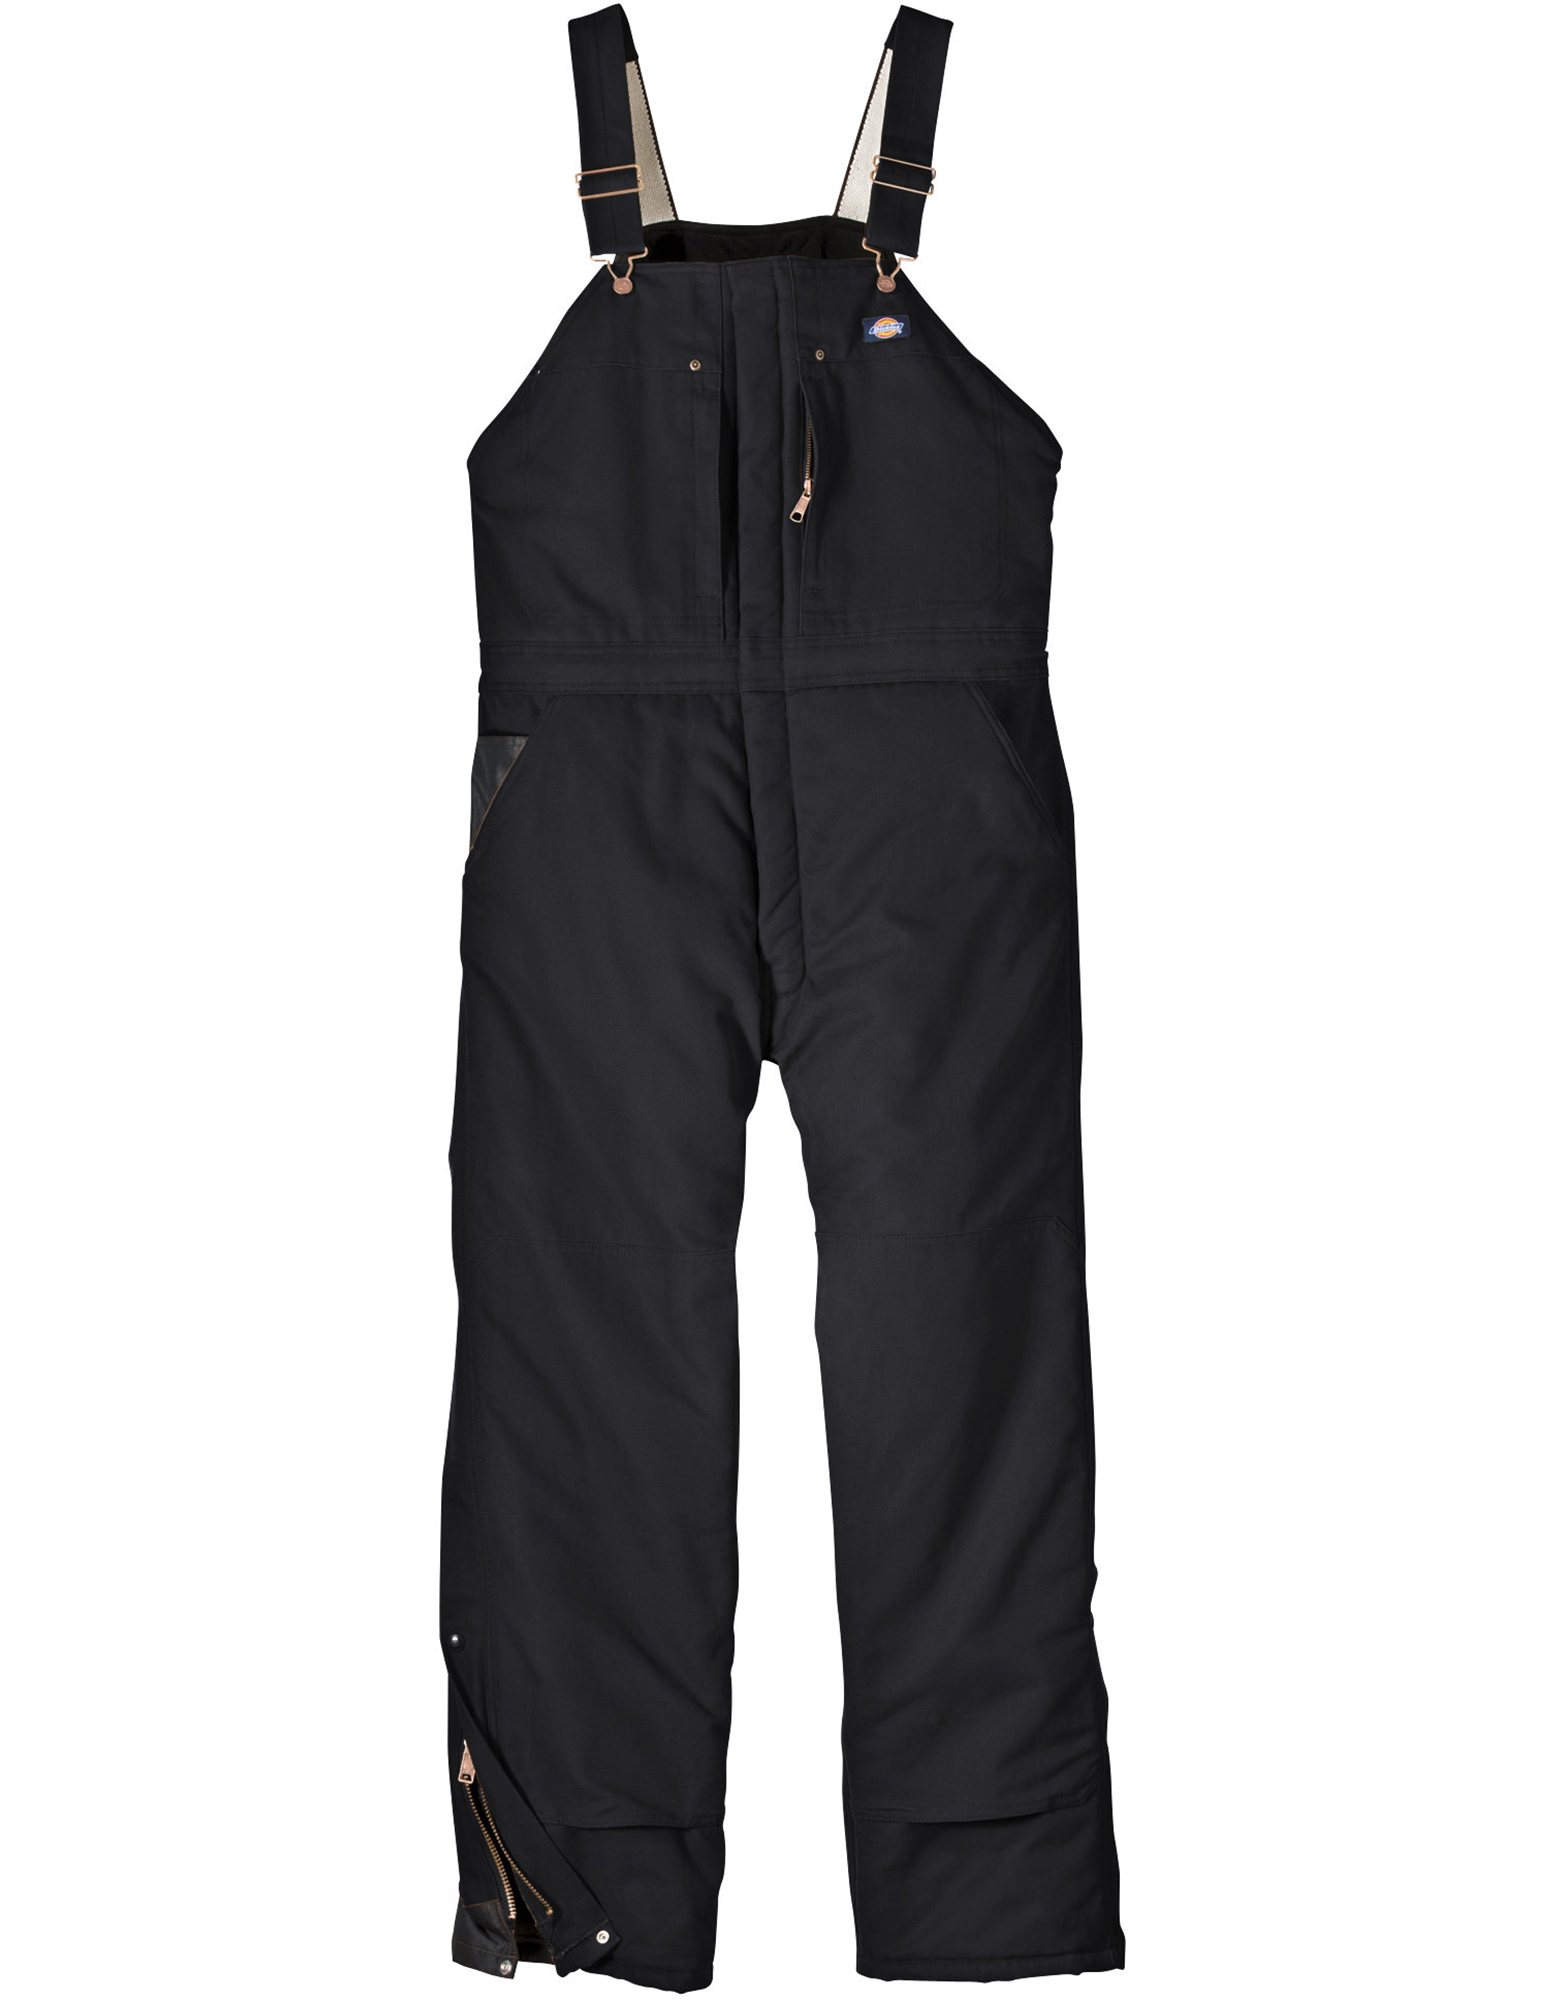 Sanded Duck Insulated Bib Overalls - Black (BK)